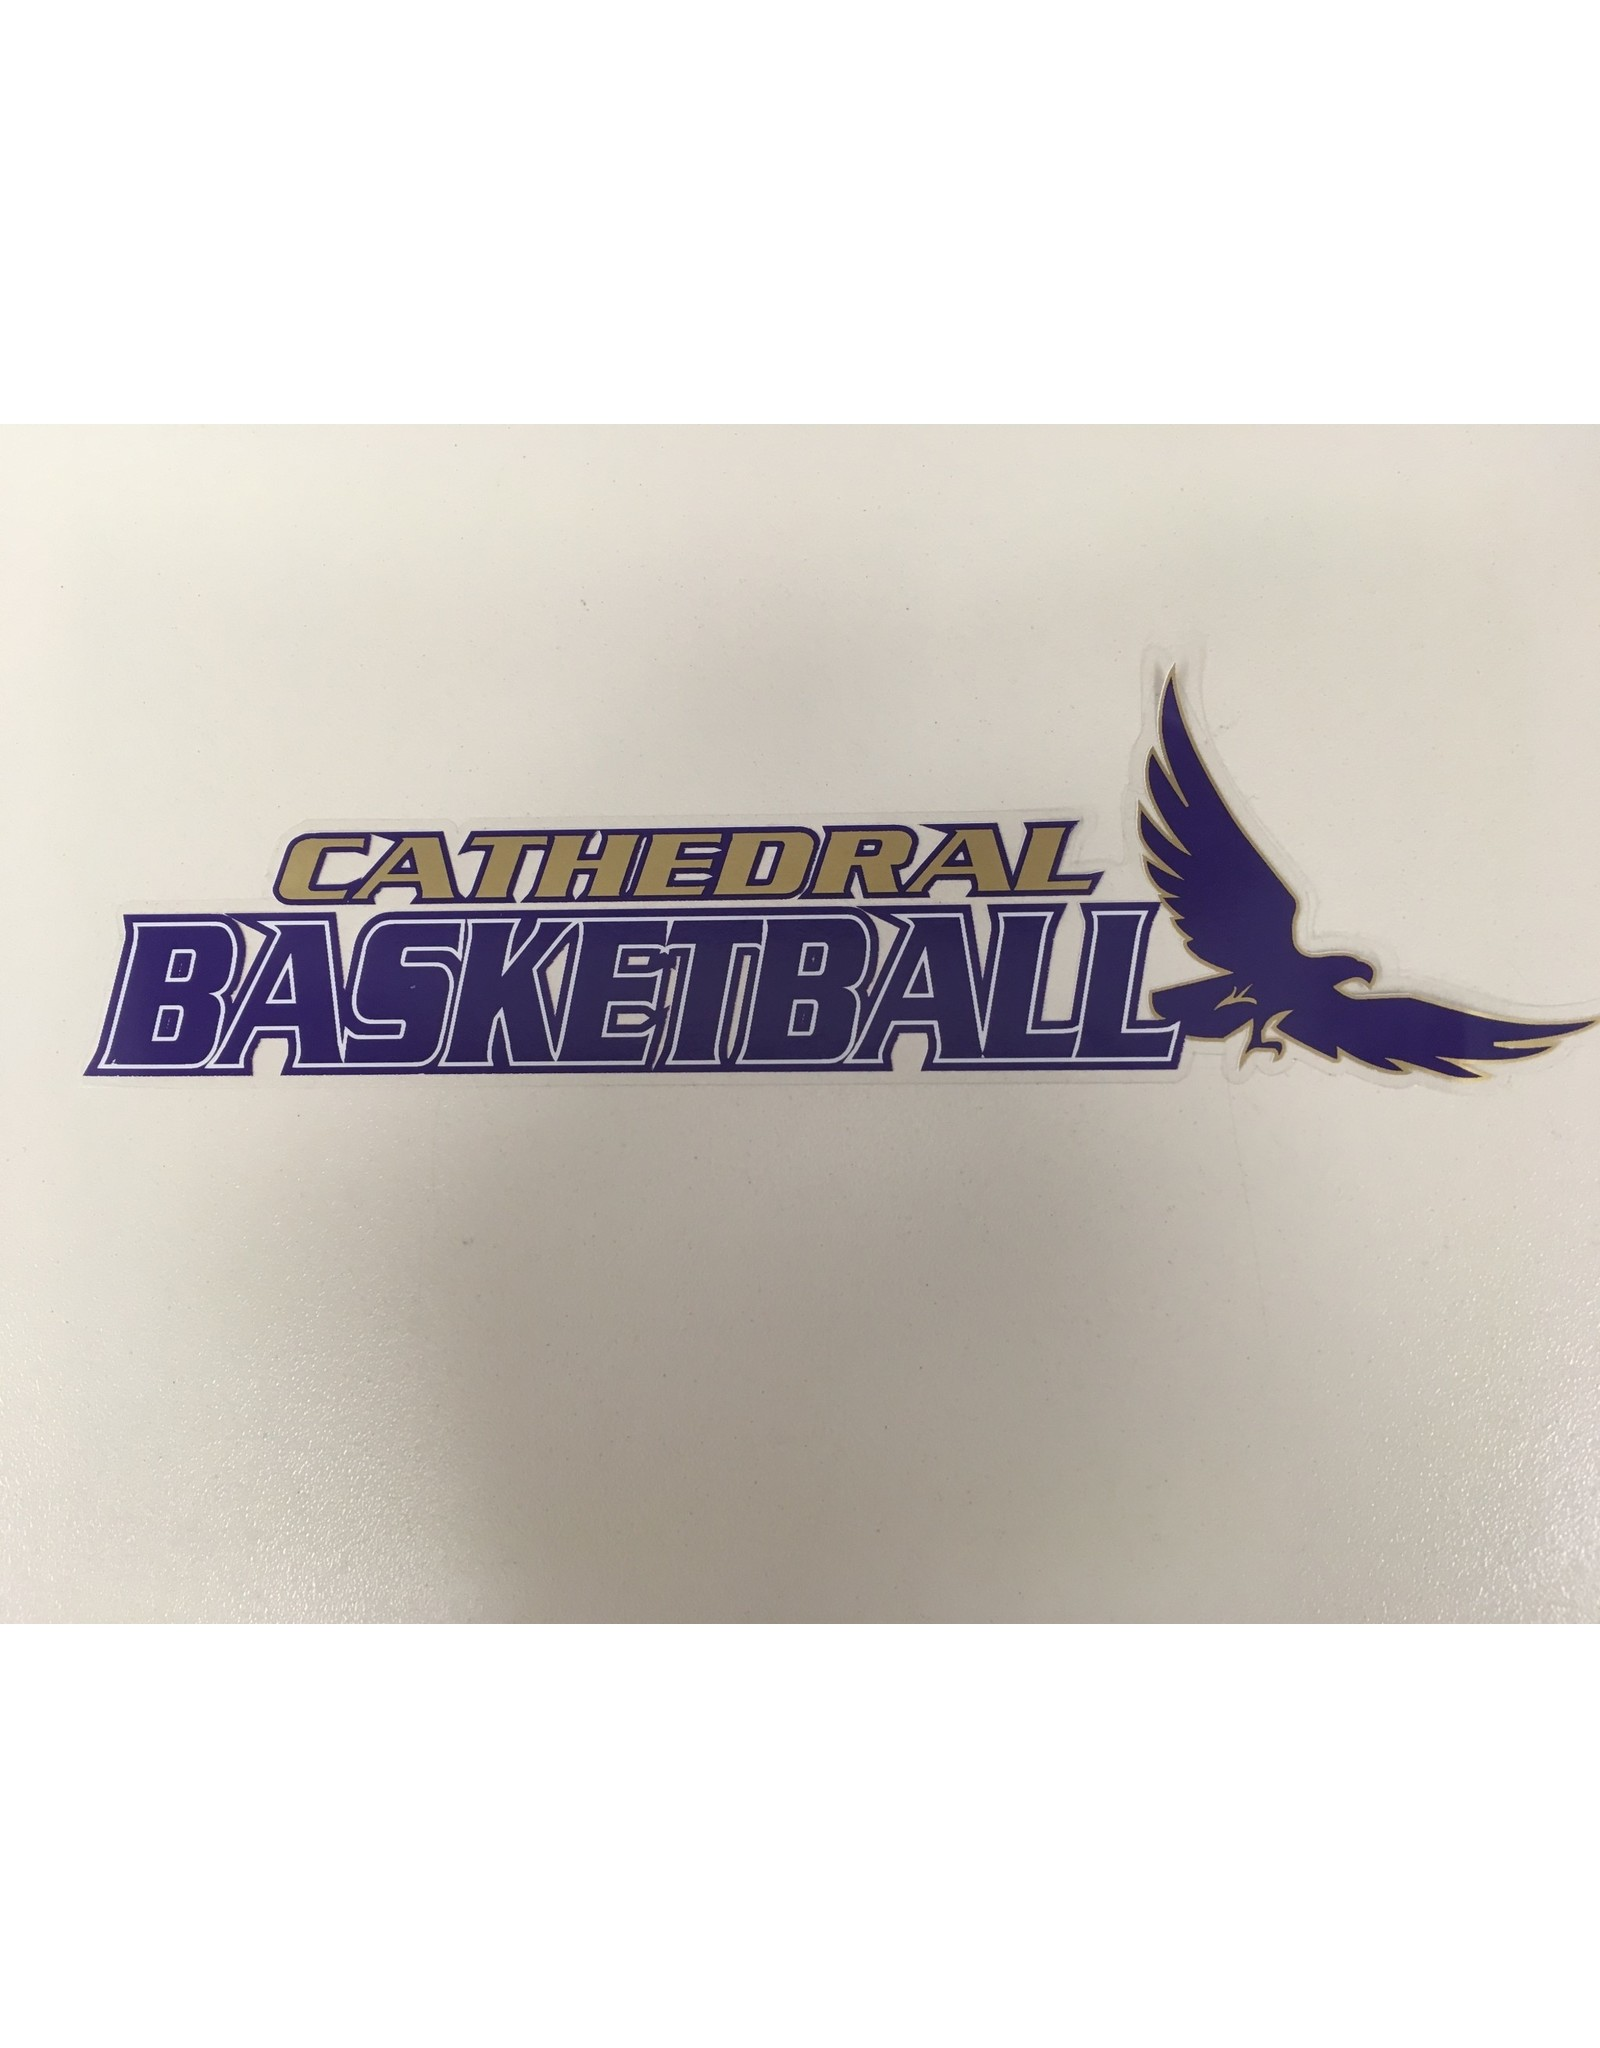 DECAL-CATHEDRAL SPORTS